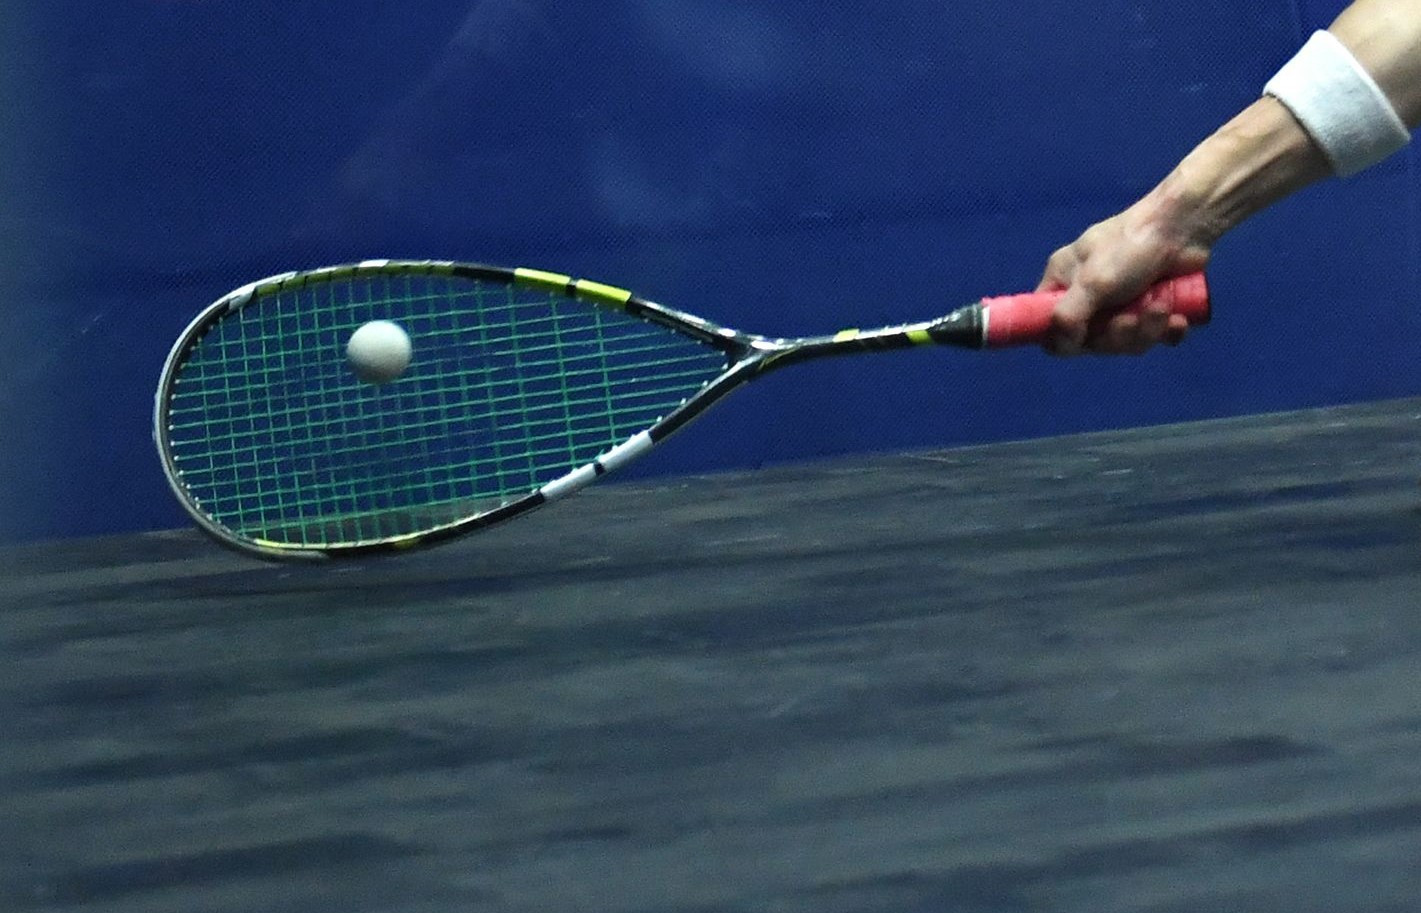 Stefanoni produces upset on opening day of 2021 US Open squash tournament